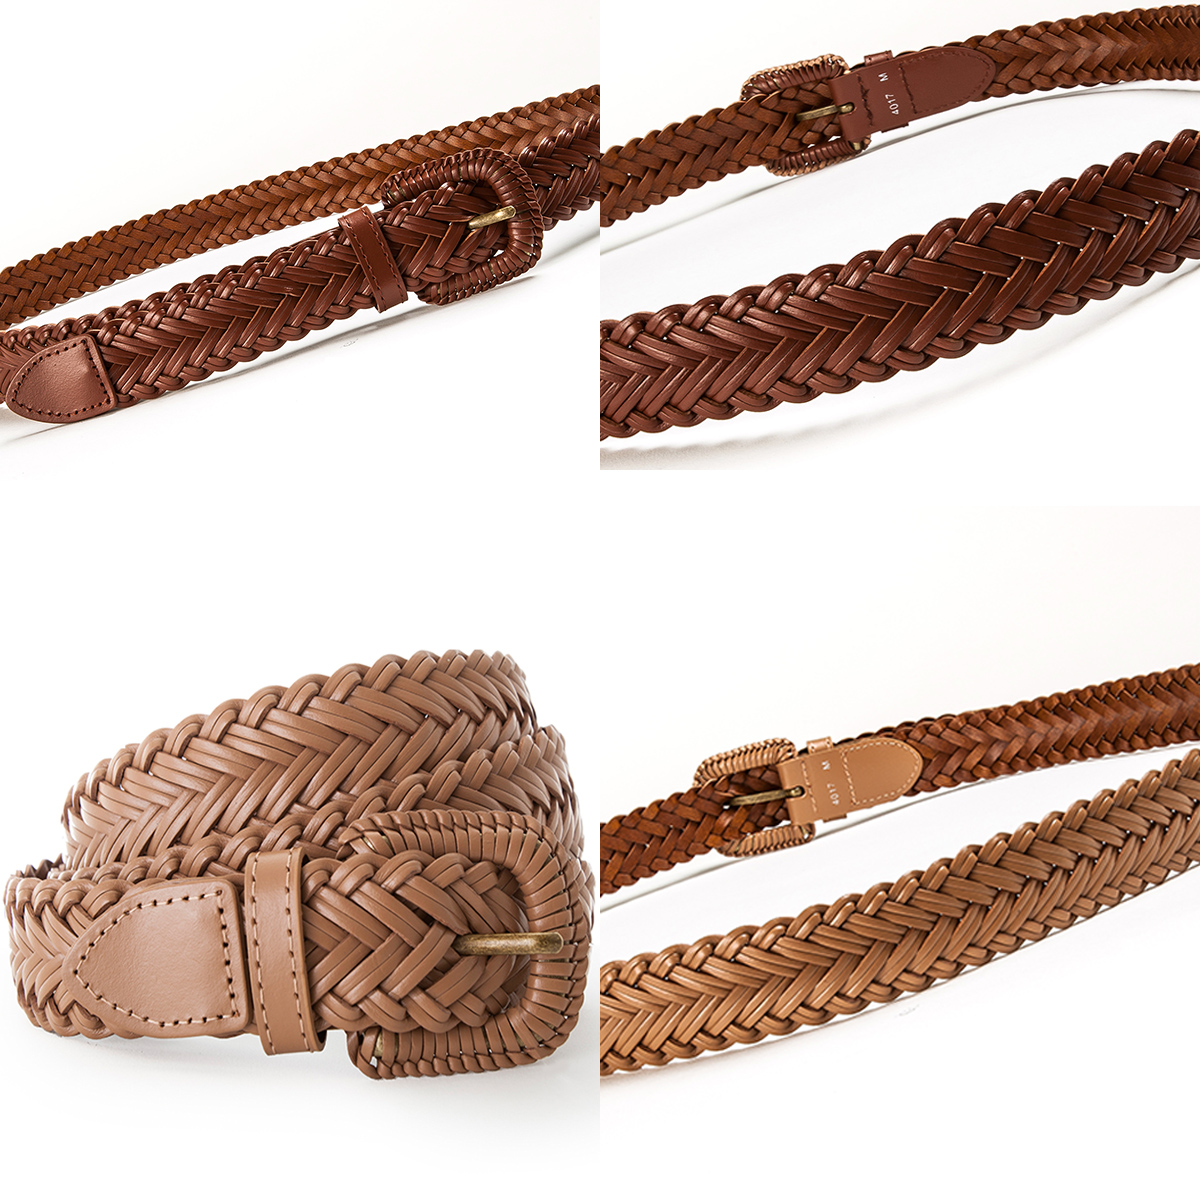 Find great deals on Plus Size Belts at Kohl's today! Sponsored Links Outside companies pay to advertise via these links when specific phrases and words are searched.